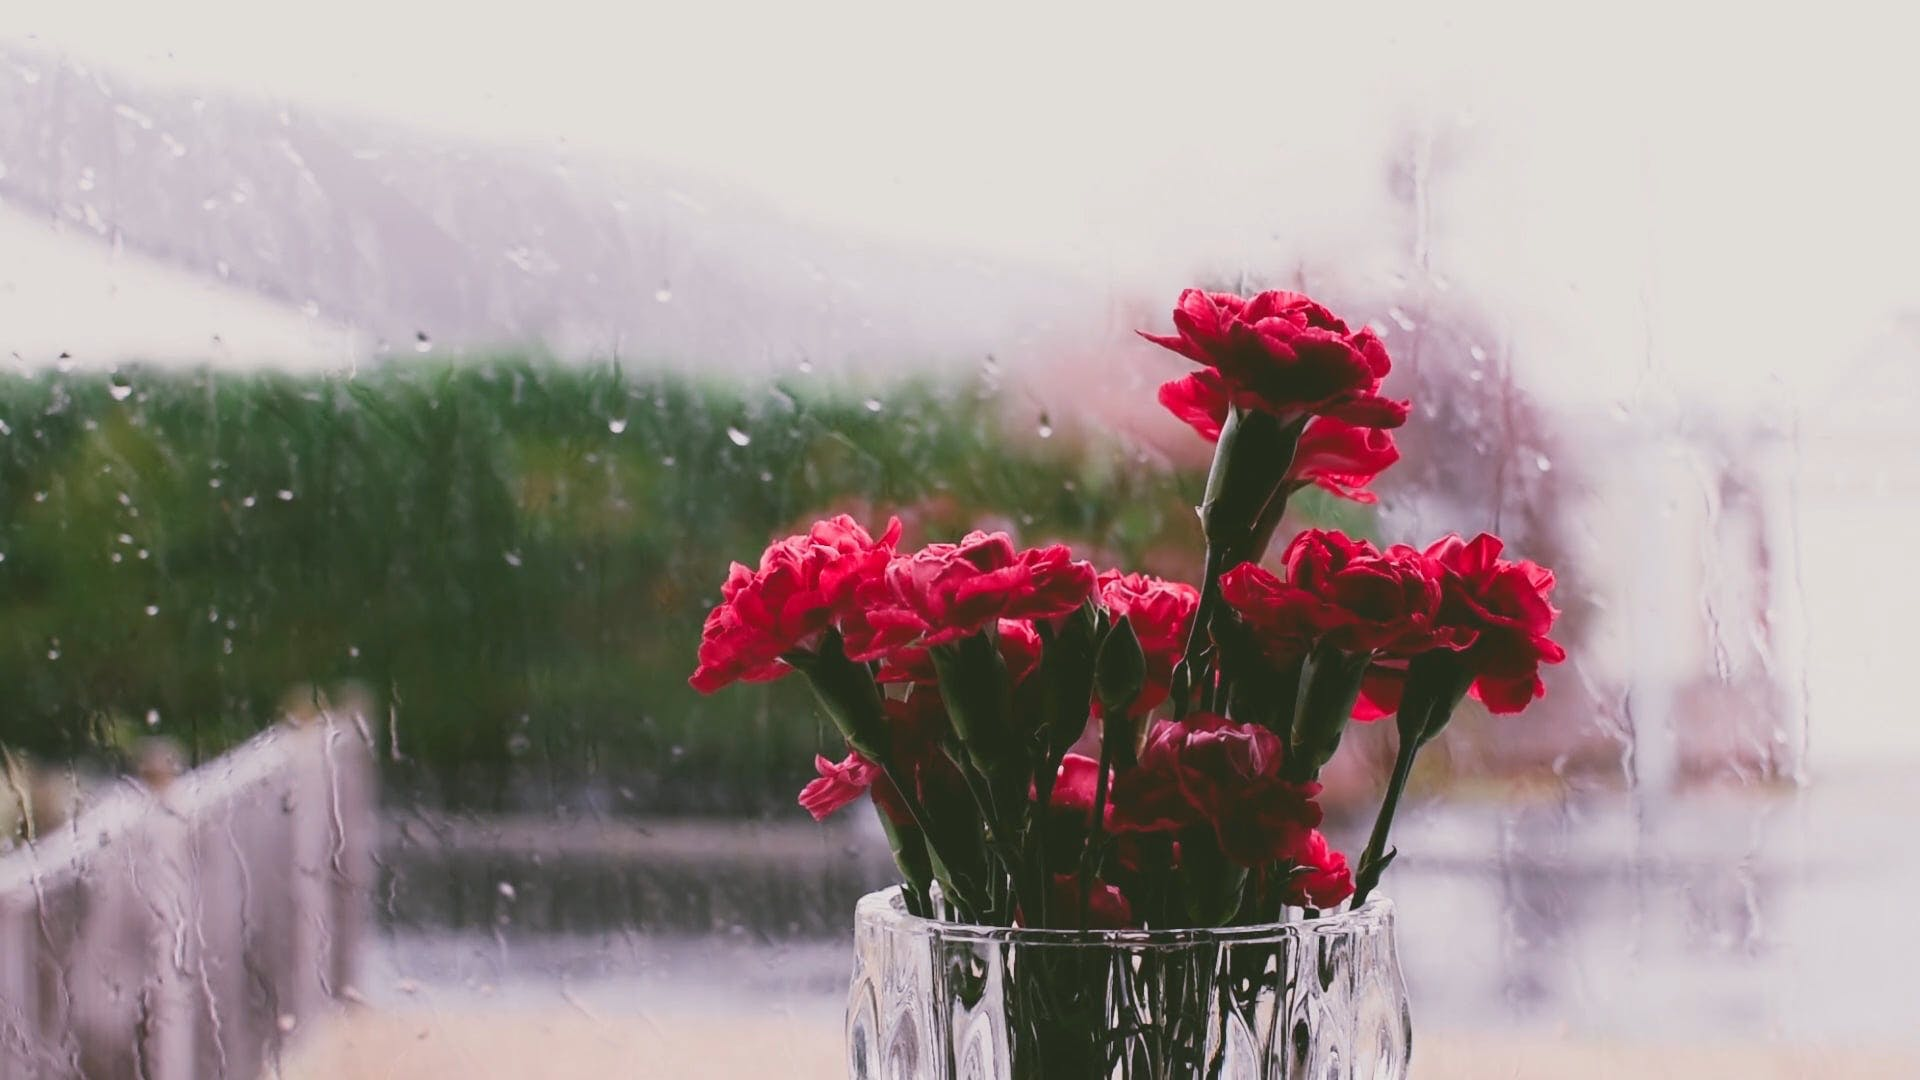 Red Flowers On A Vase With View Of A Rainy Day